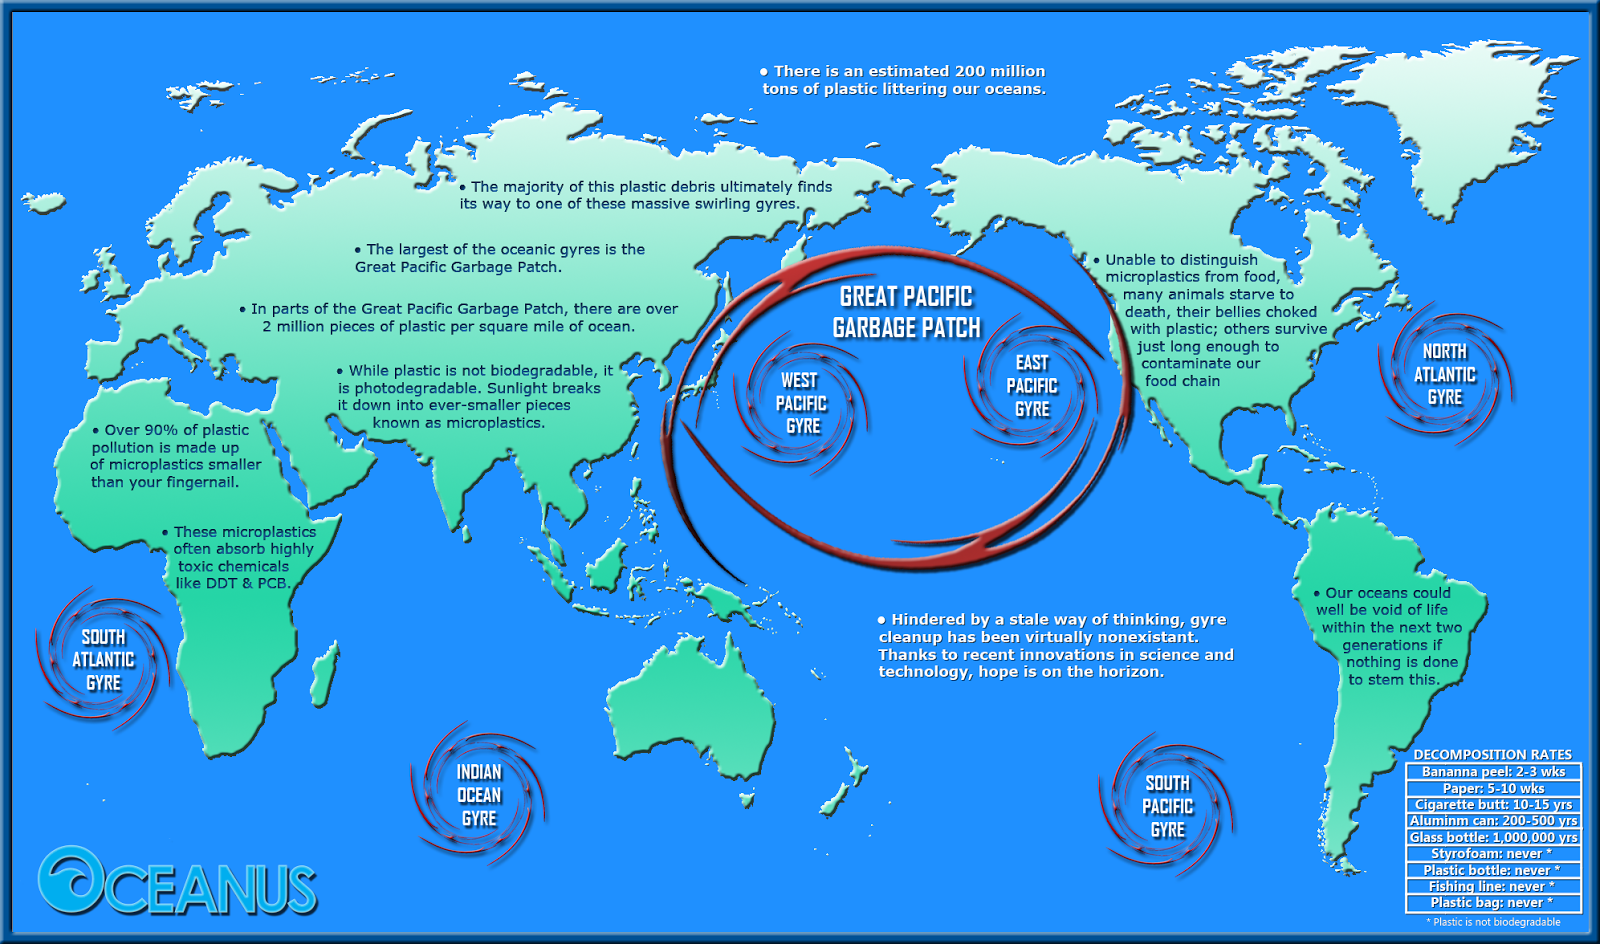 great pacific garbage patch a gyre